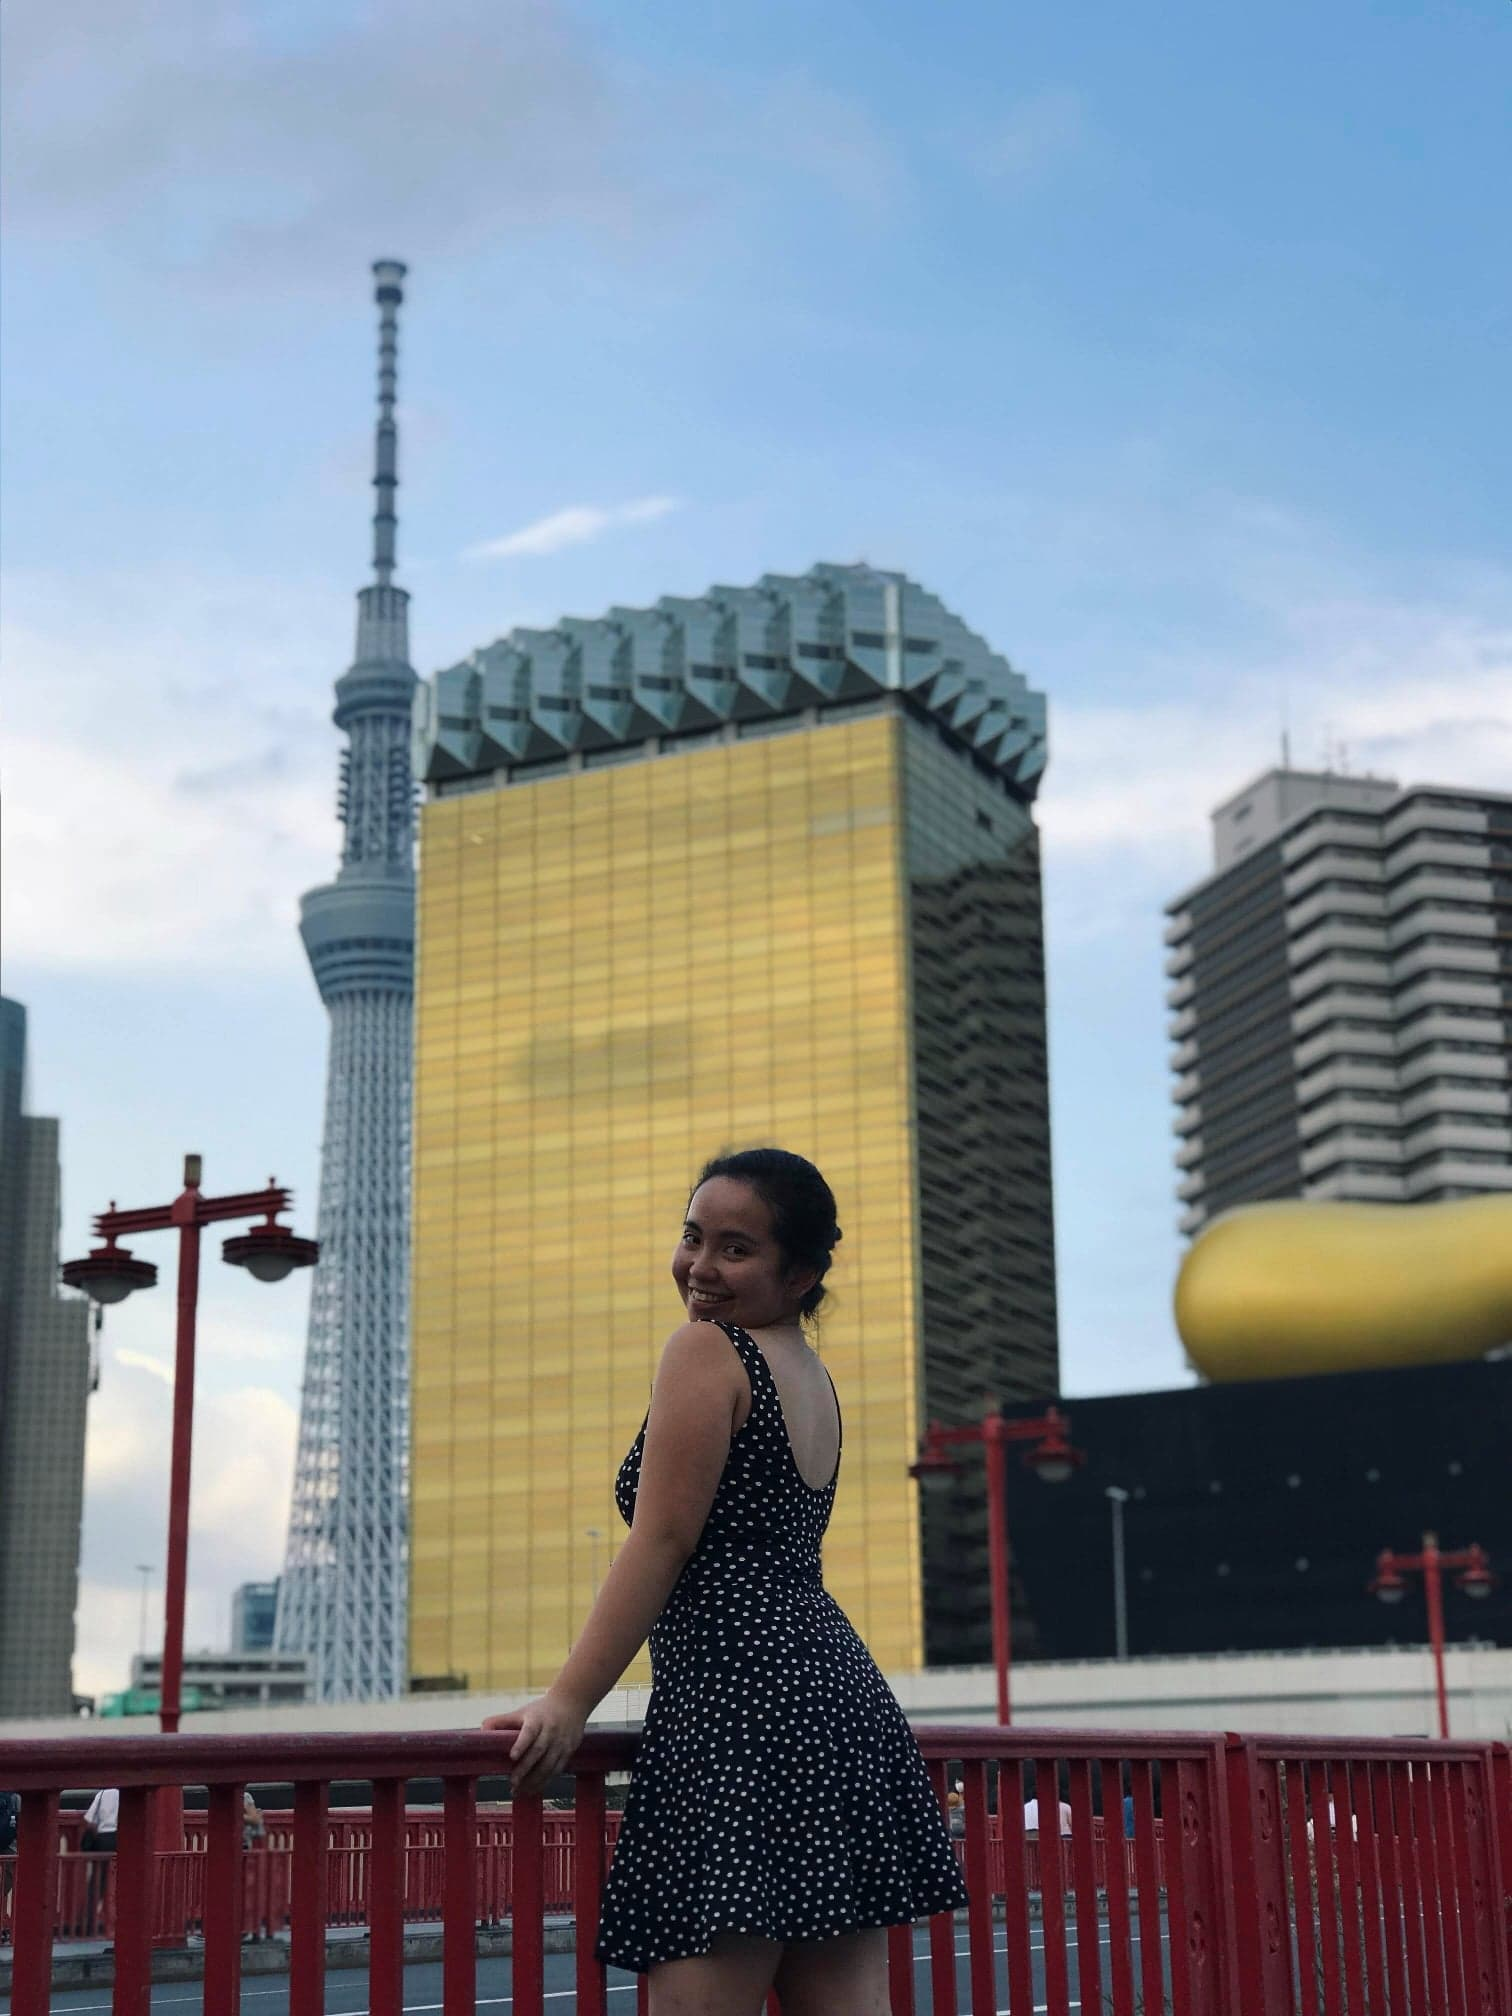 Before leaving Asakusa … - Have a quick photo shoot in the nearby bridge overlooking the Tokyo Skytree and the ASAHI building (Asahi beer)!